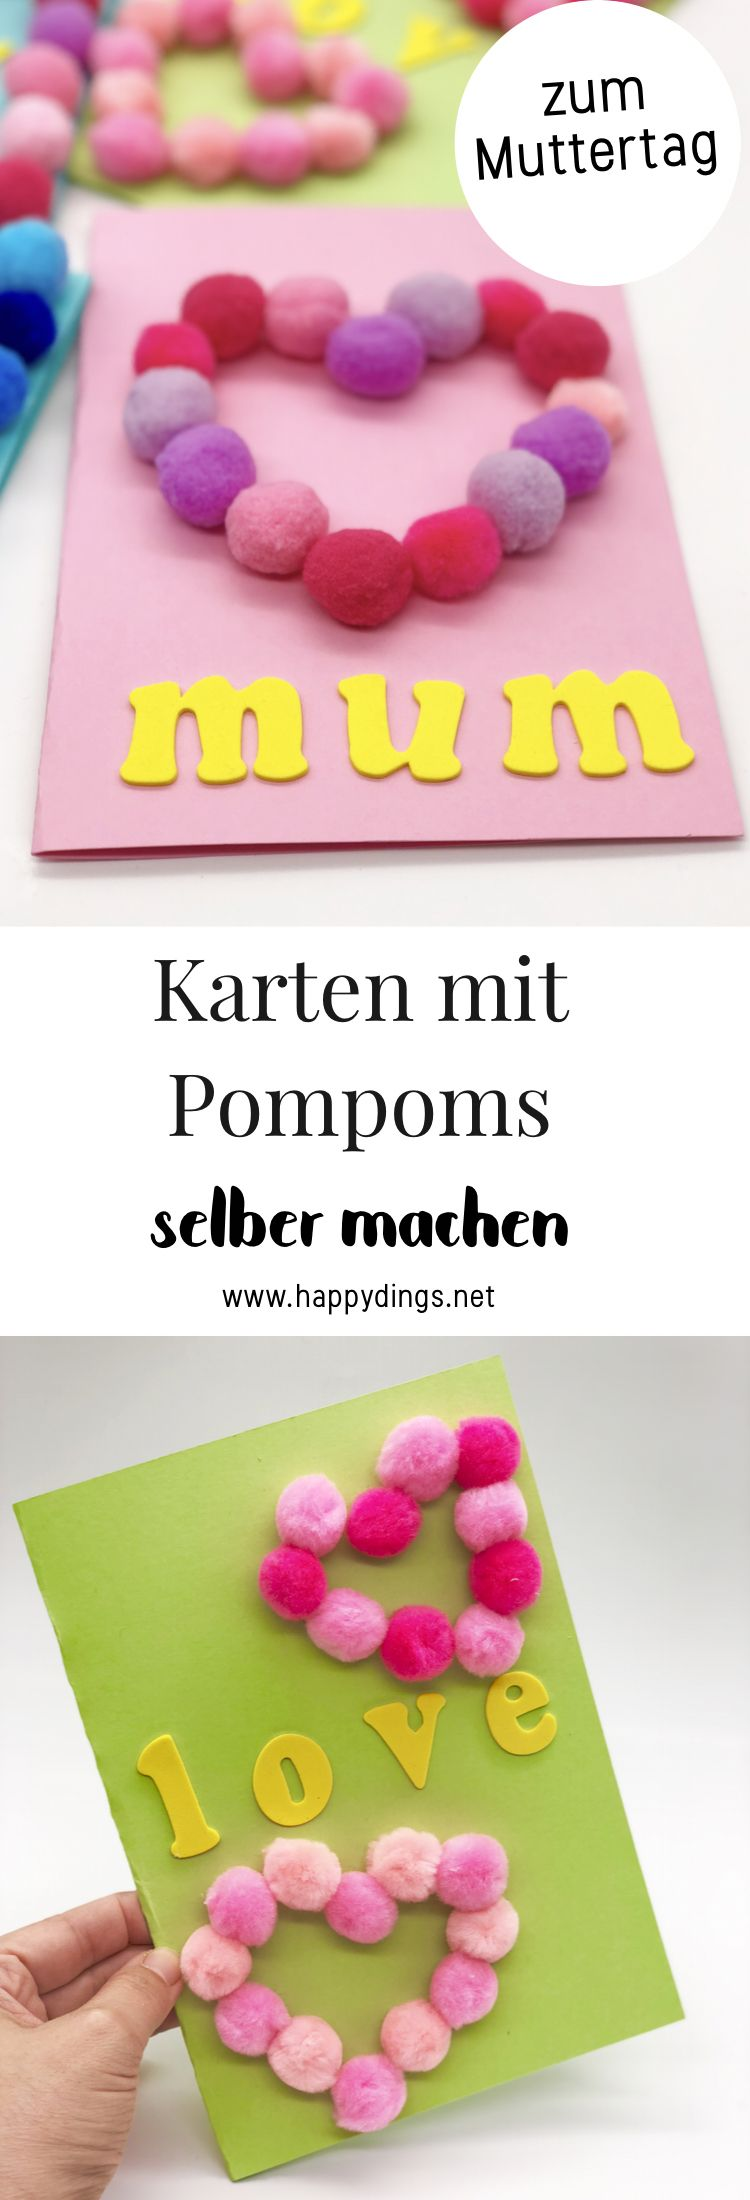 basteln mit pompons kreative karten selber machen muttertag basteln diy pinterest. Black Bedroom Furniture Sets. Home Design Ideas